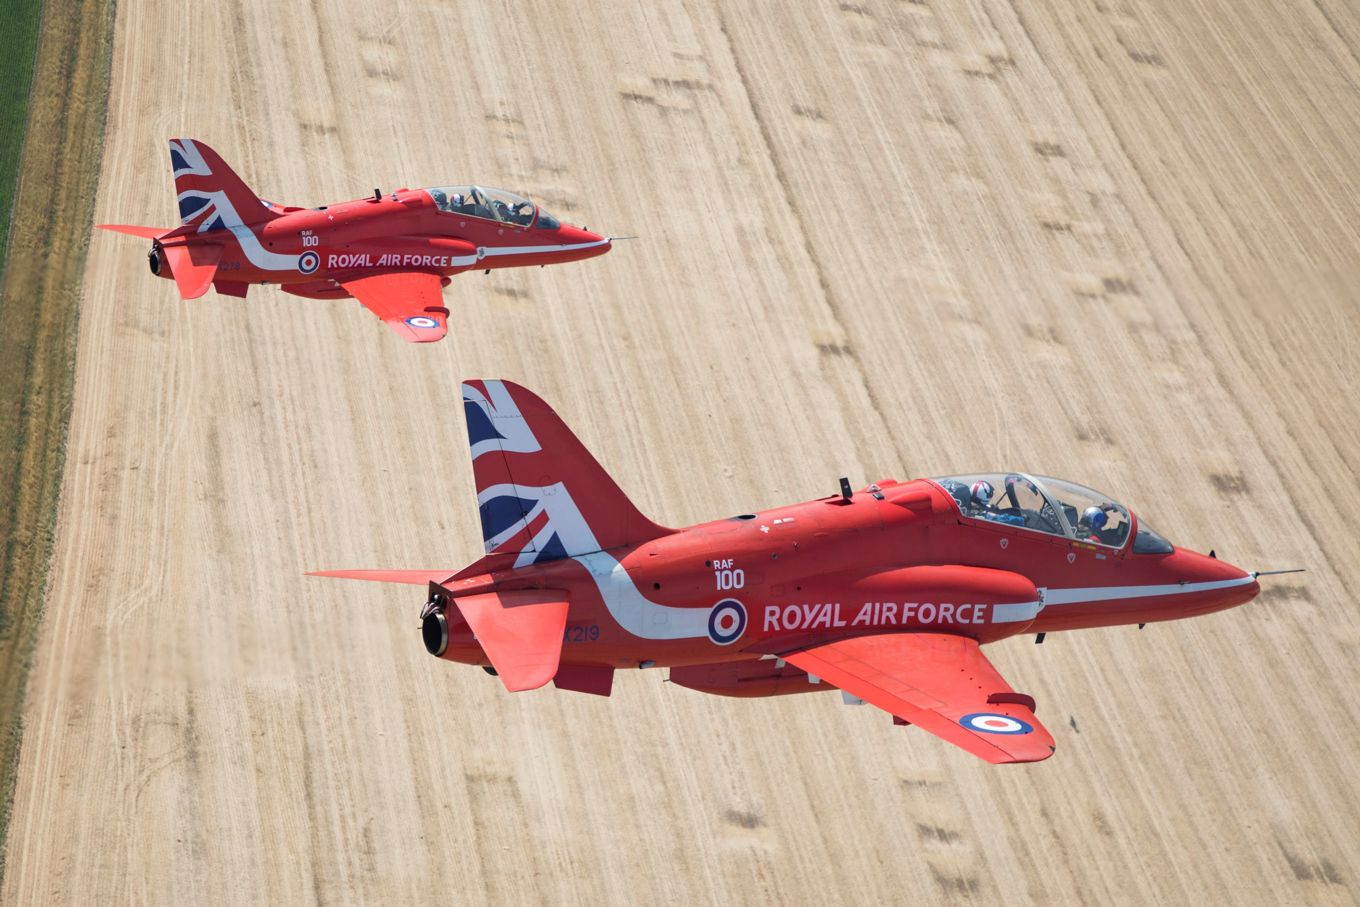 The Red Arrows use the BAE Systems Hawk T1.